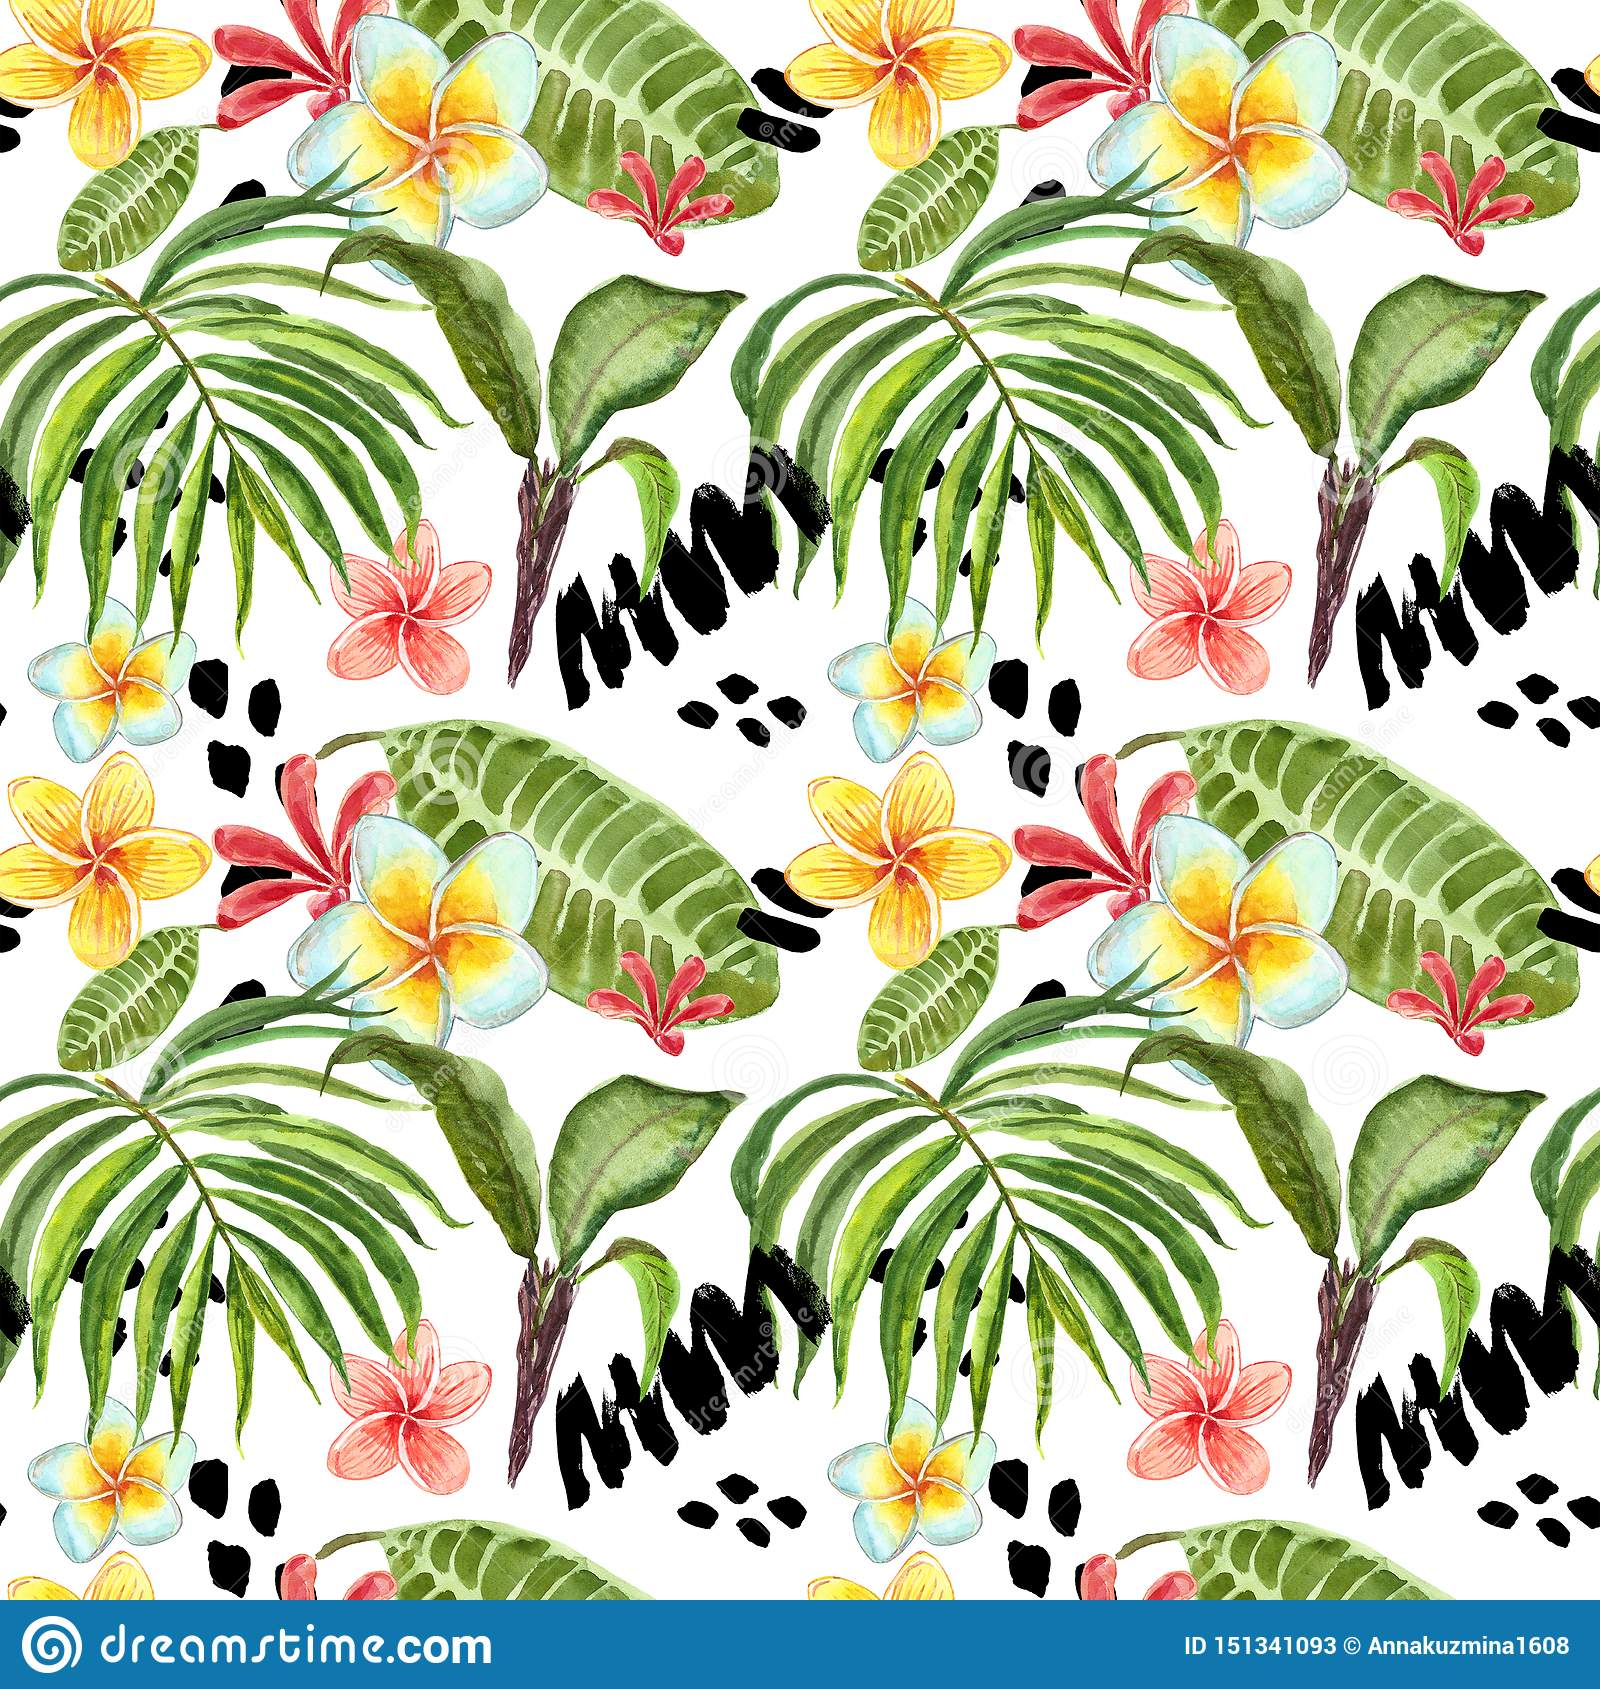 Watercolor tropical leaves seamless pattern. Hand painted palm leaf, exotic plumeria flowers and green foliage on white background